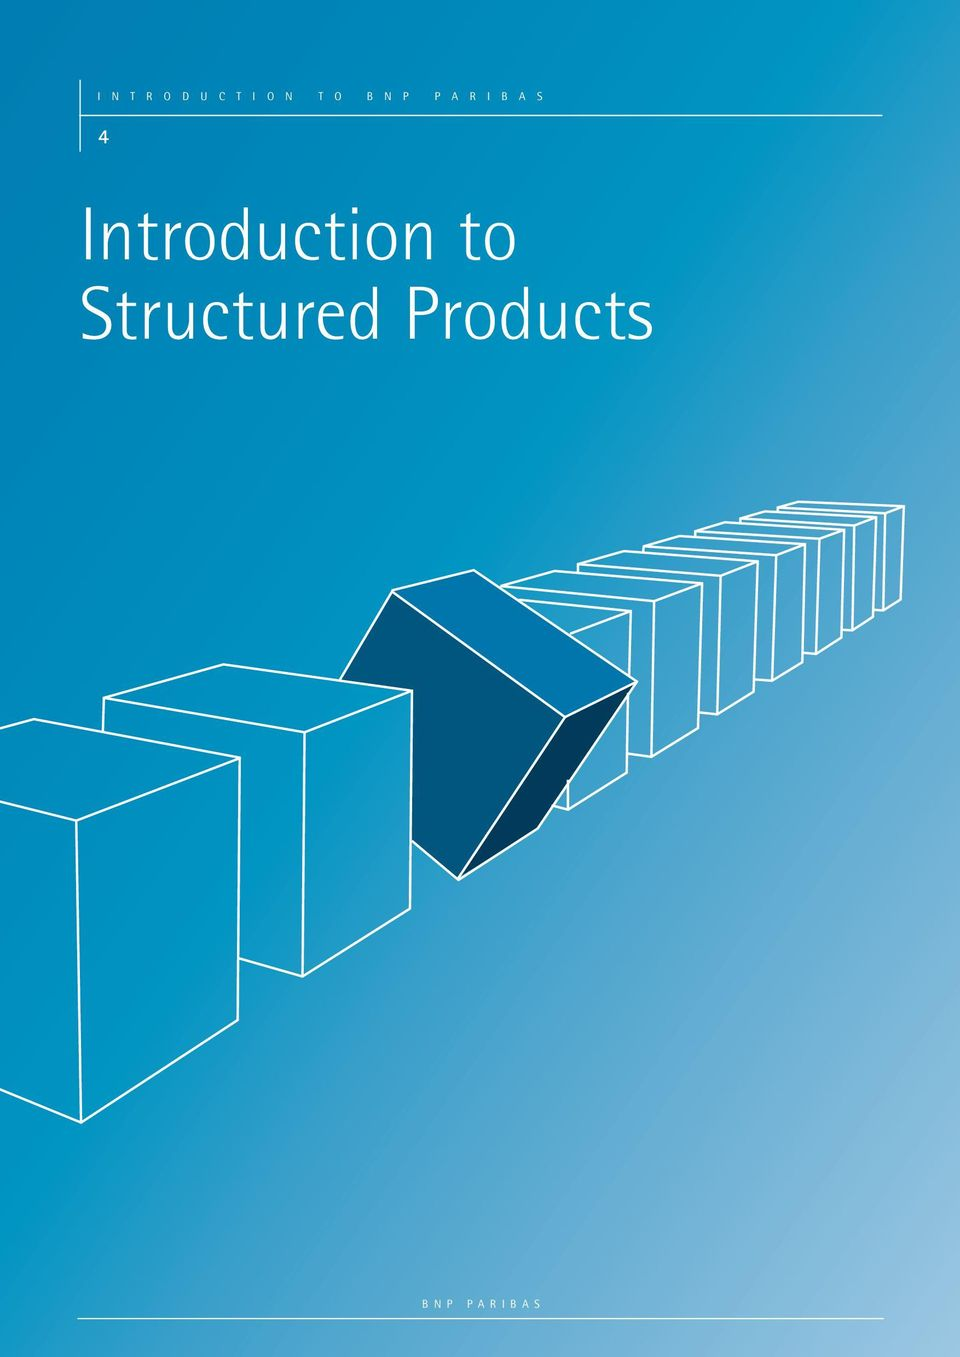 Introduction to Structured